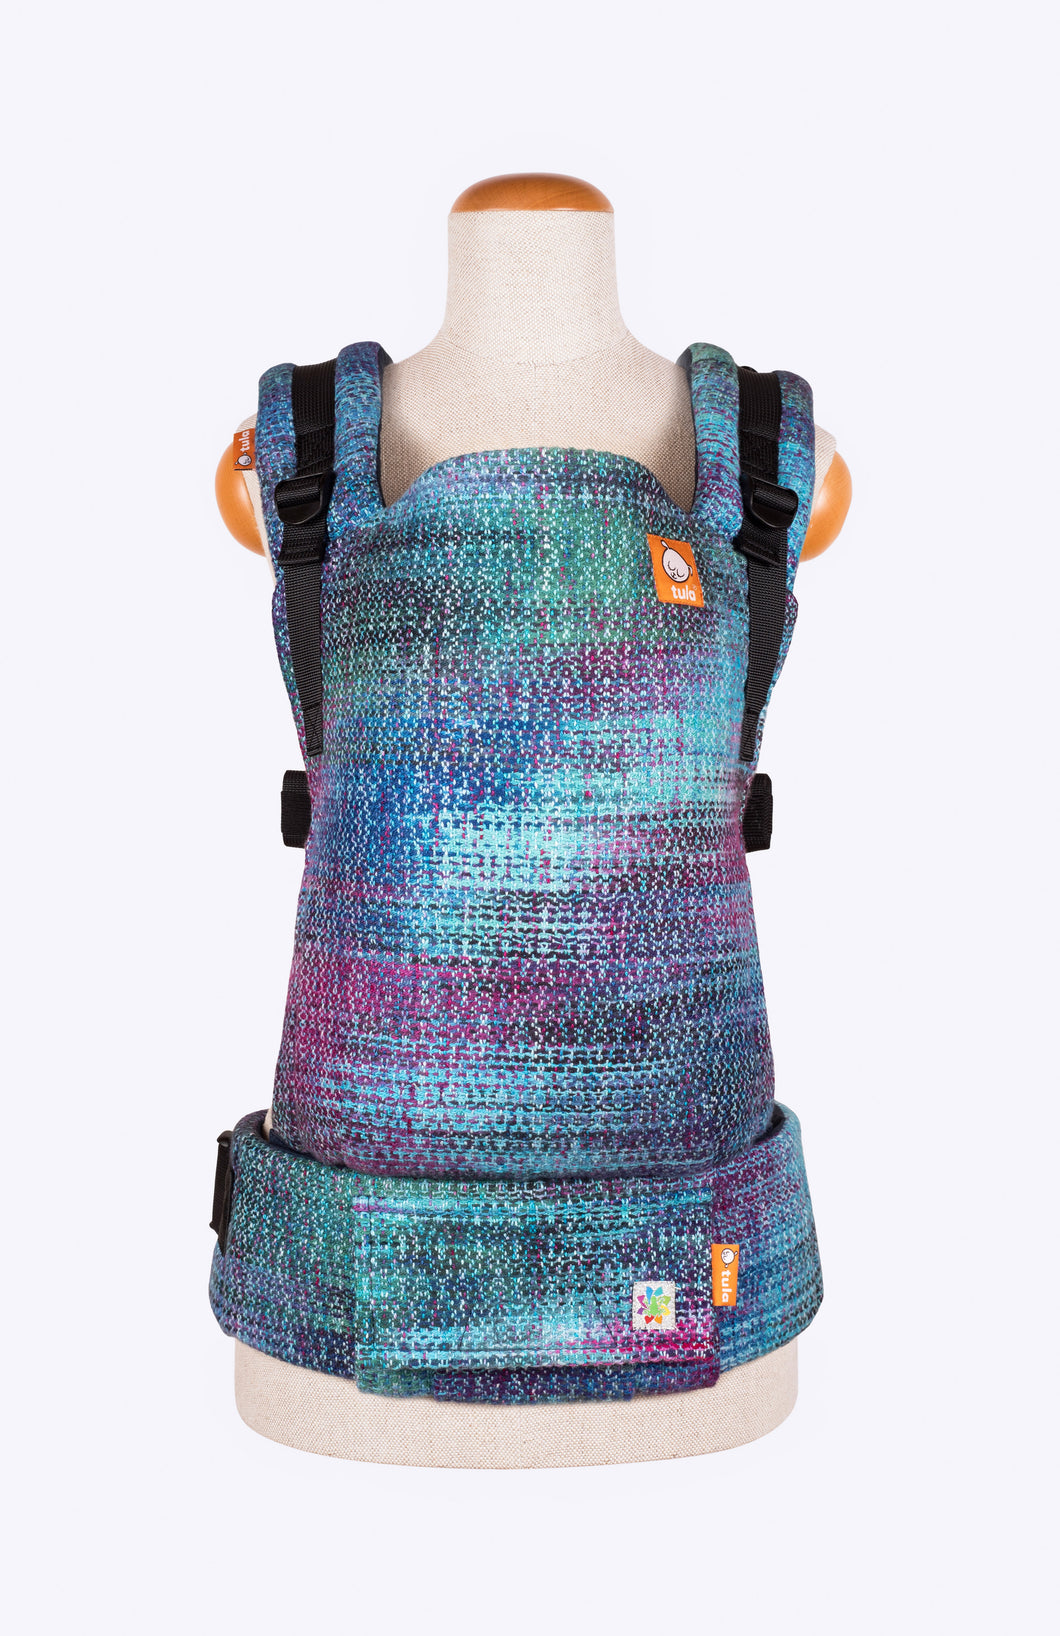 Rainbow Frog Lustrous Dream Jewel Tone Speckled Weft - Tula Signature Baby Carrier Wrap Conversion